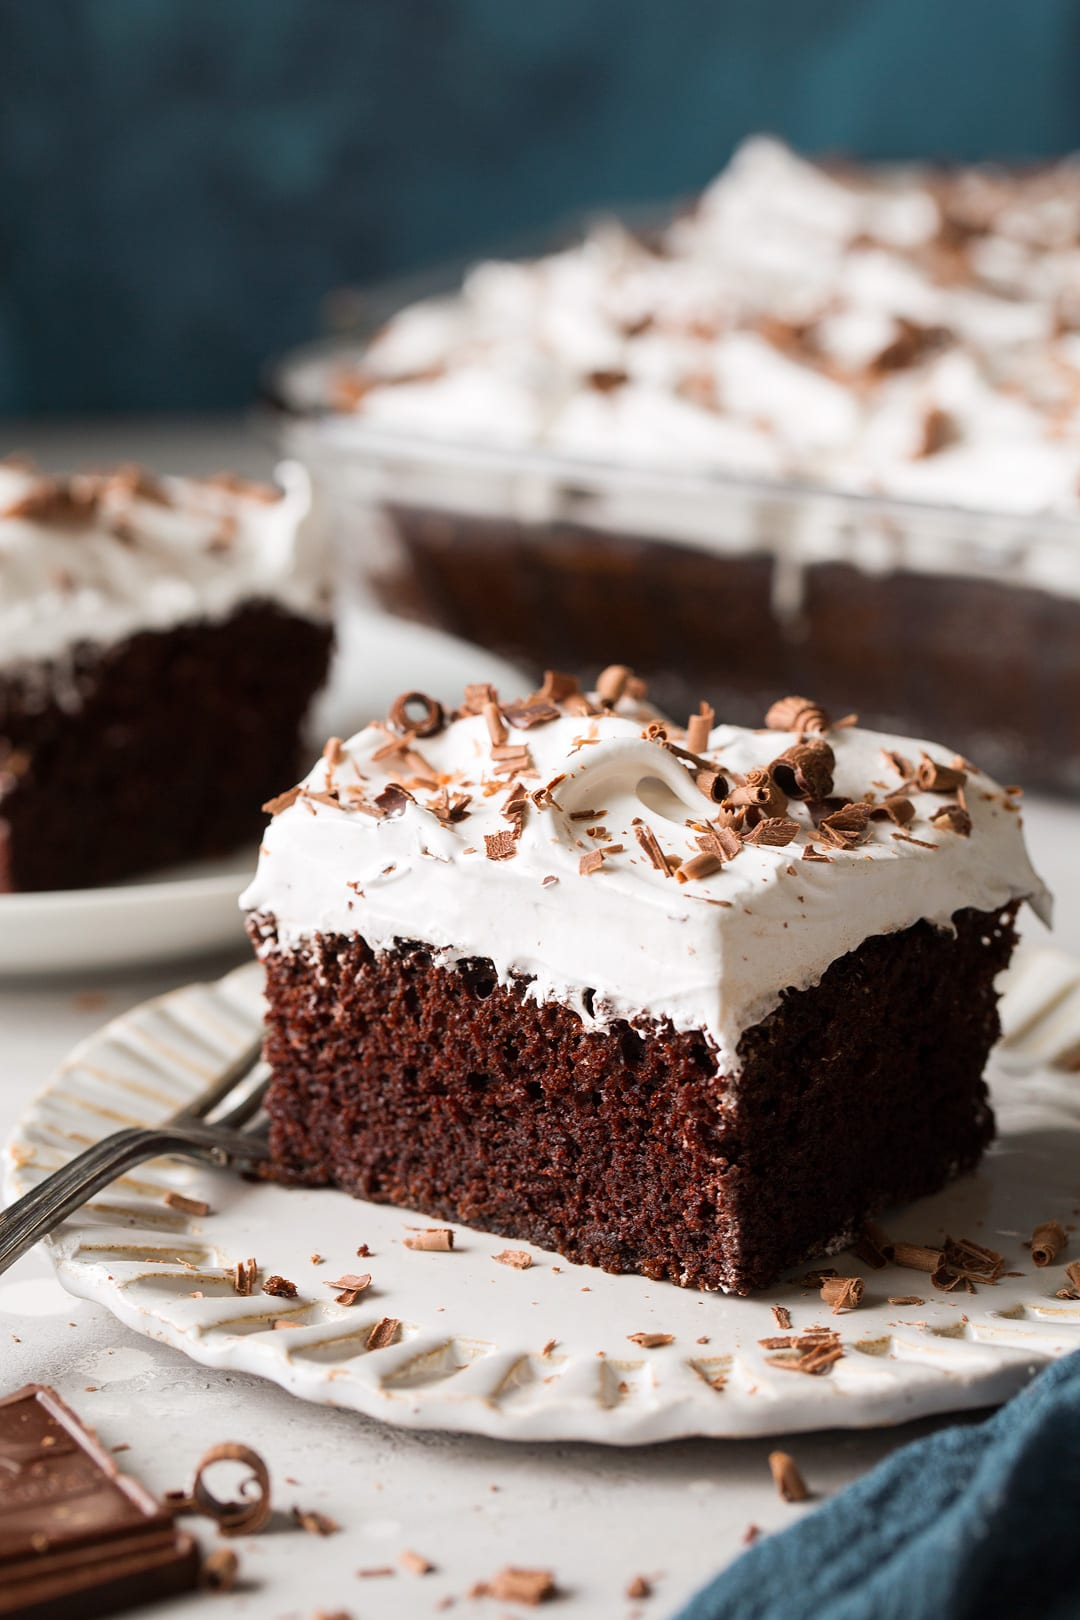 Chocolate Mayonnaise Cake With Marshmallow Frosting